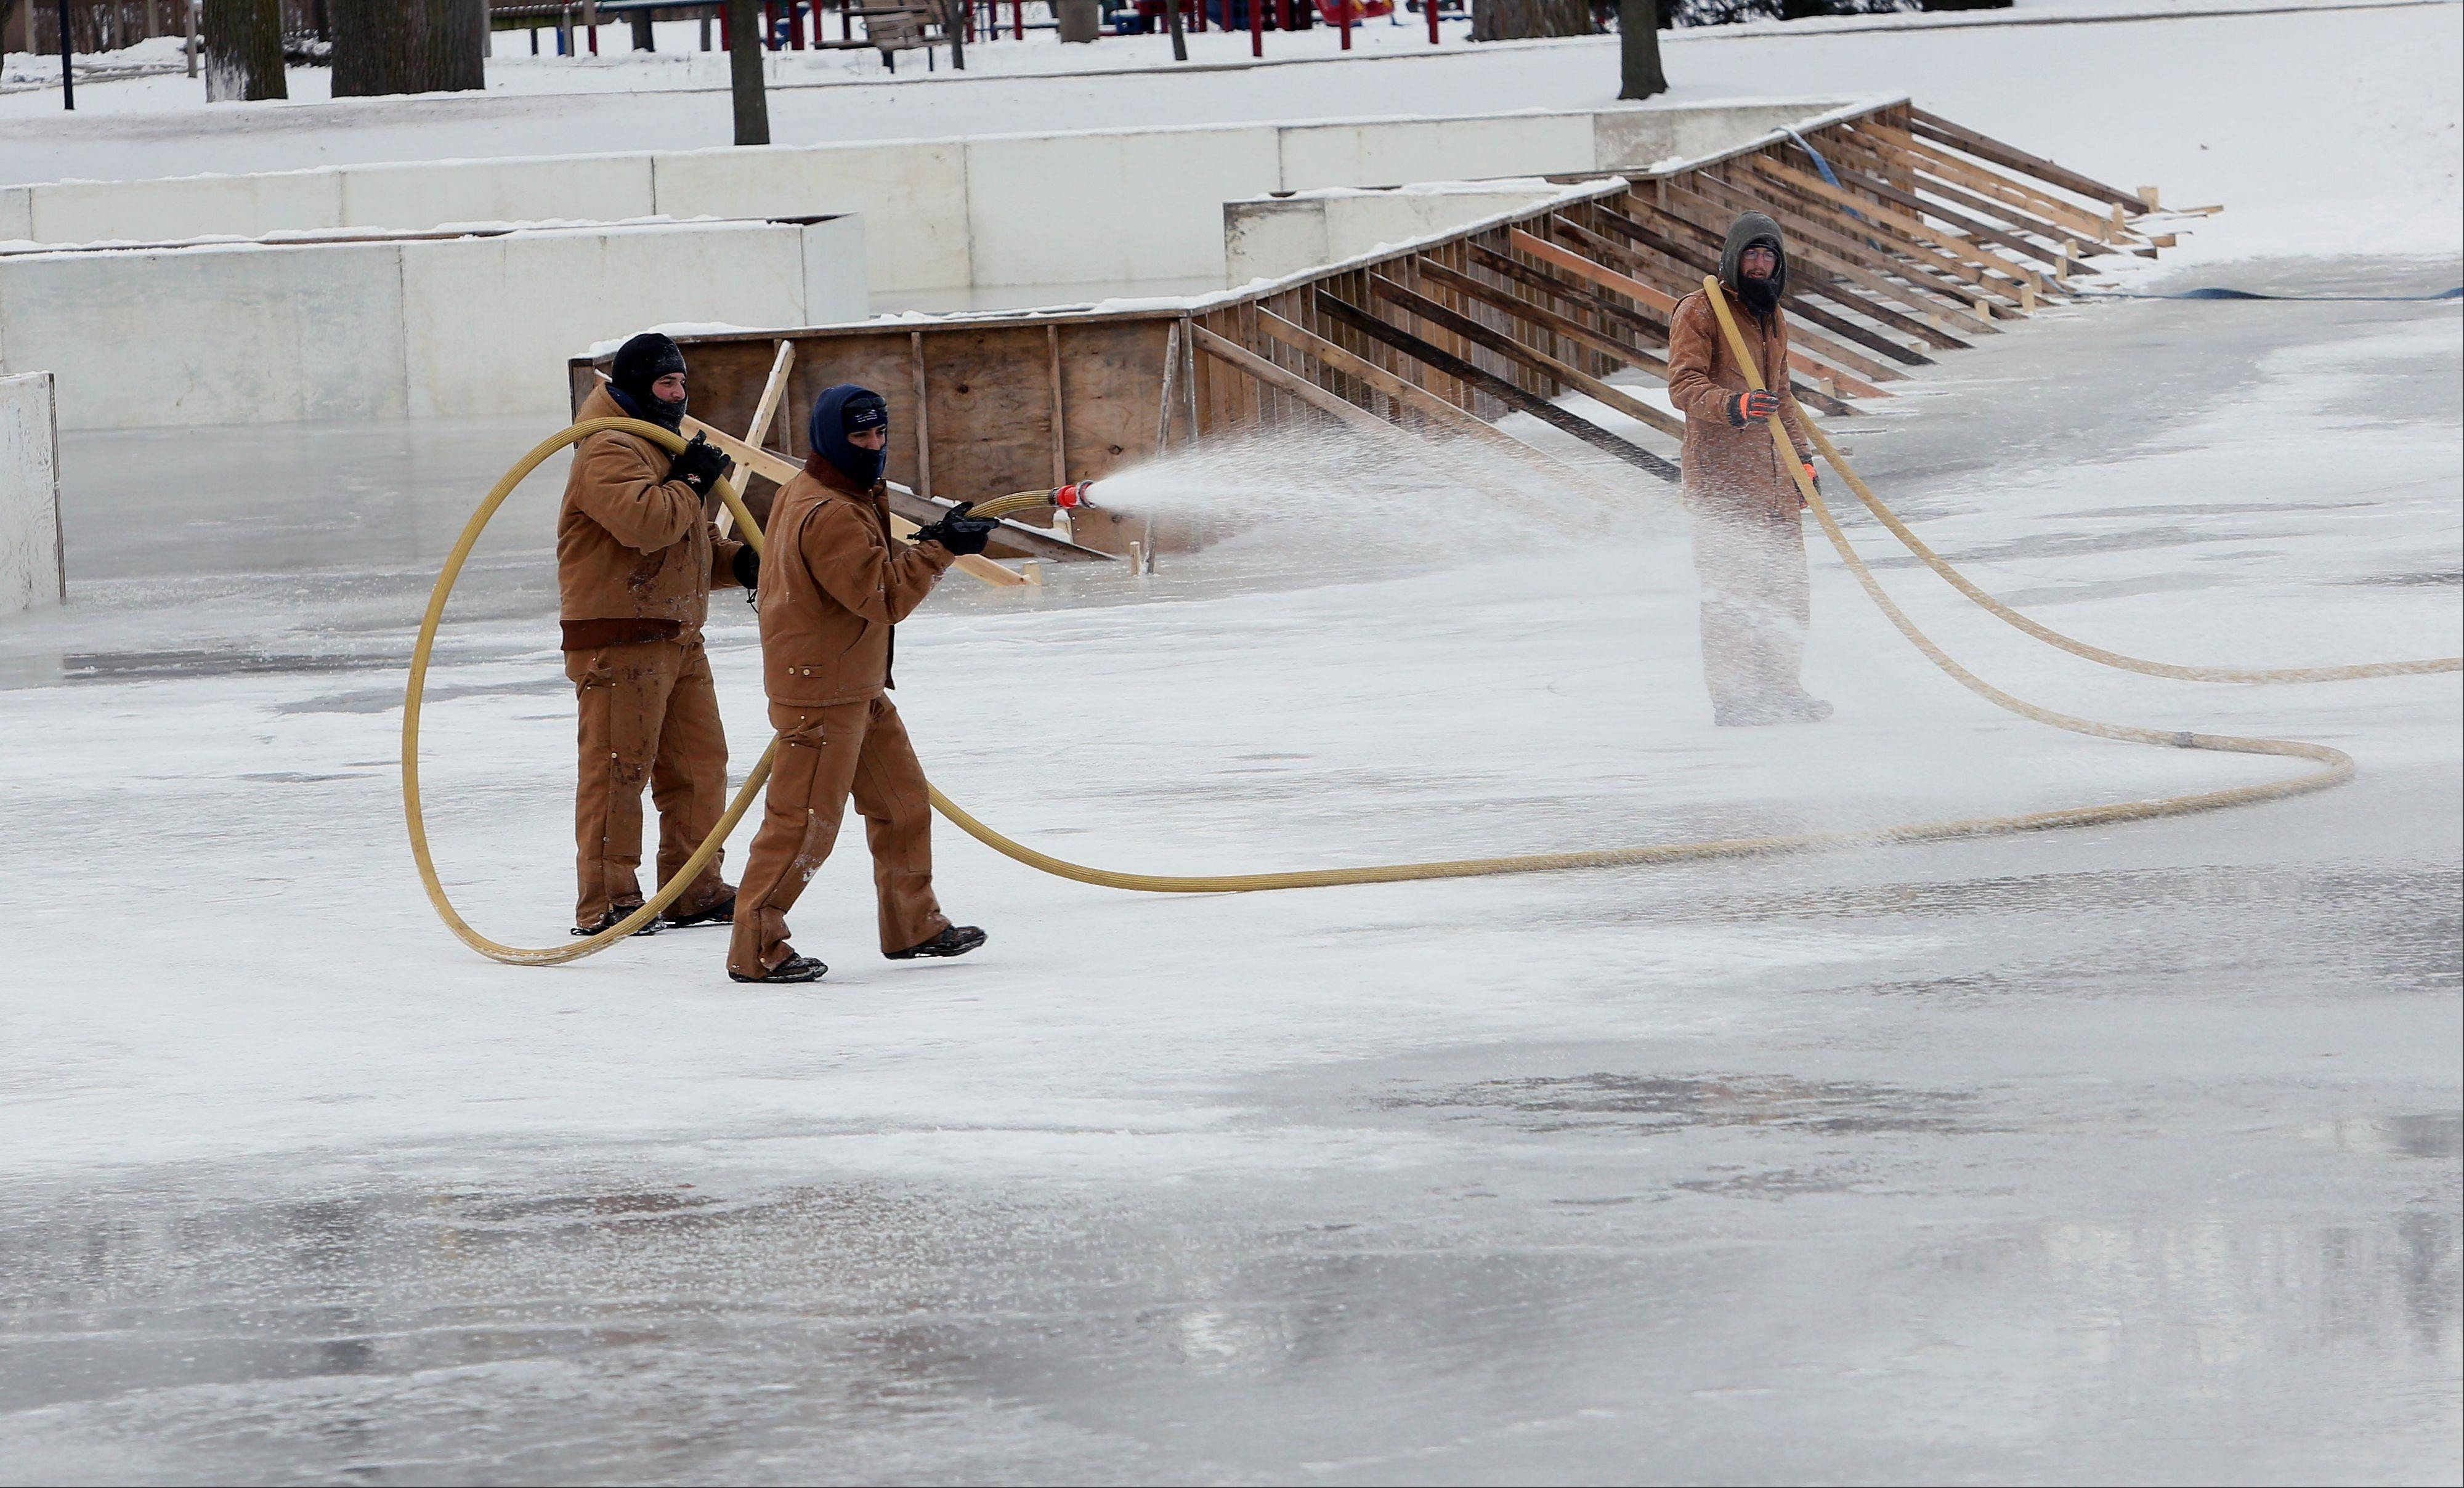 Naperville Park District crews add water Thursday to the Riverwalk ice rinks. Two other areas are now open for ice skating: Nike Sports Complex at 288 W. Diehl Road, and Gartner Park at 524 W. Gartner Road.